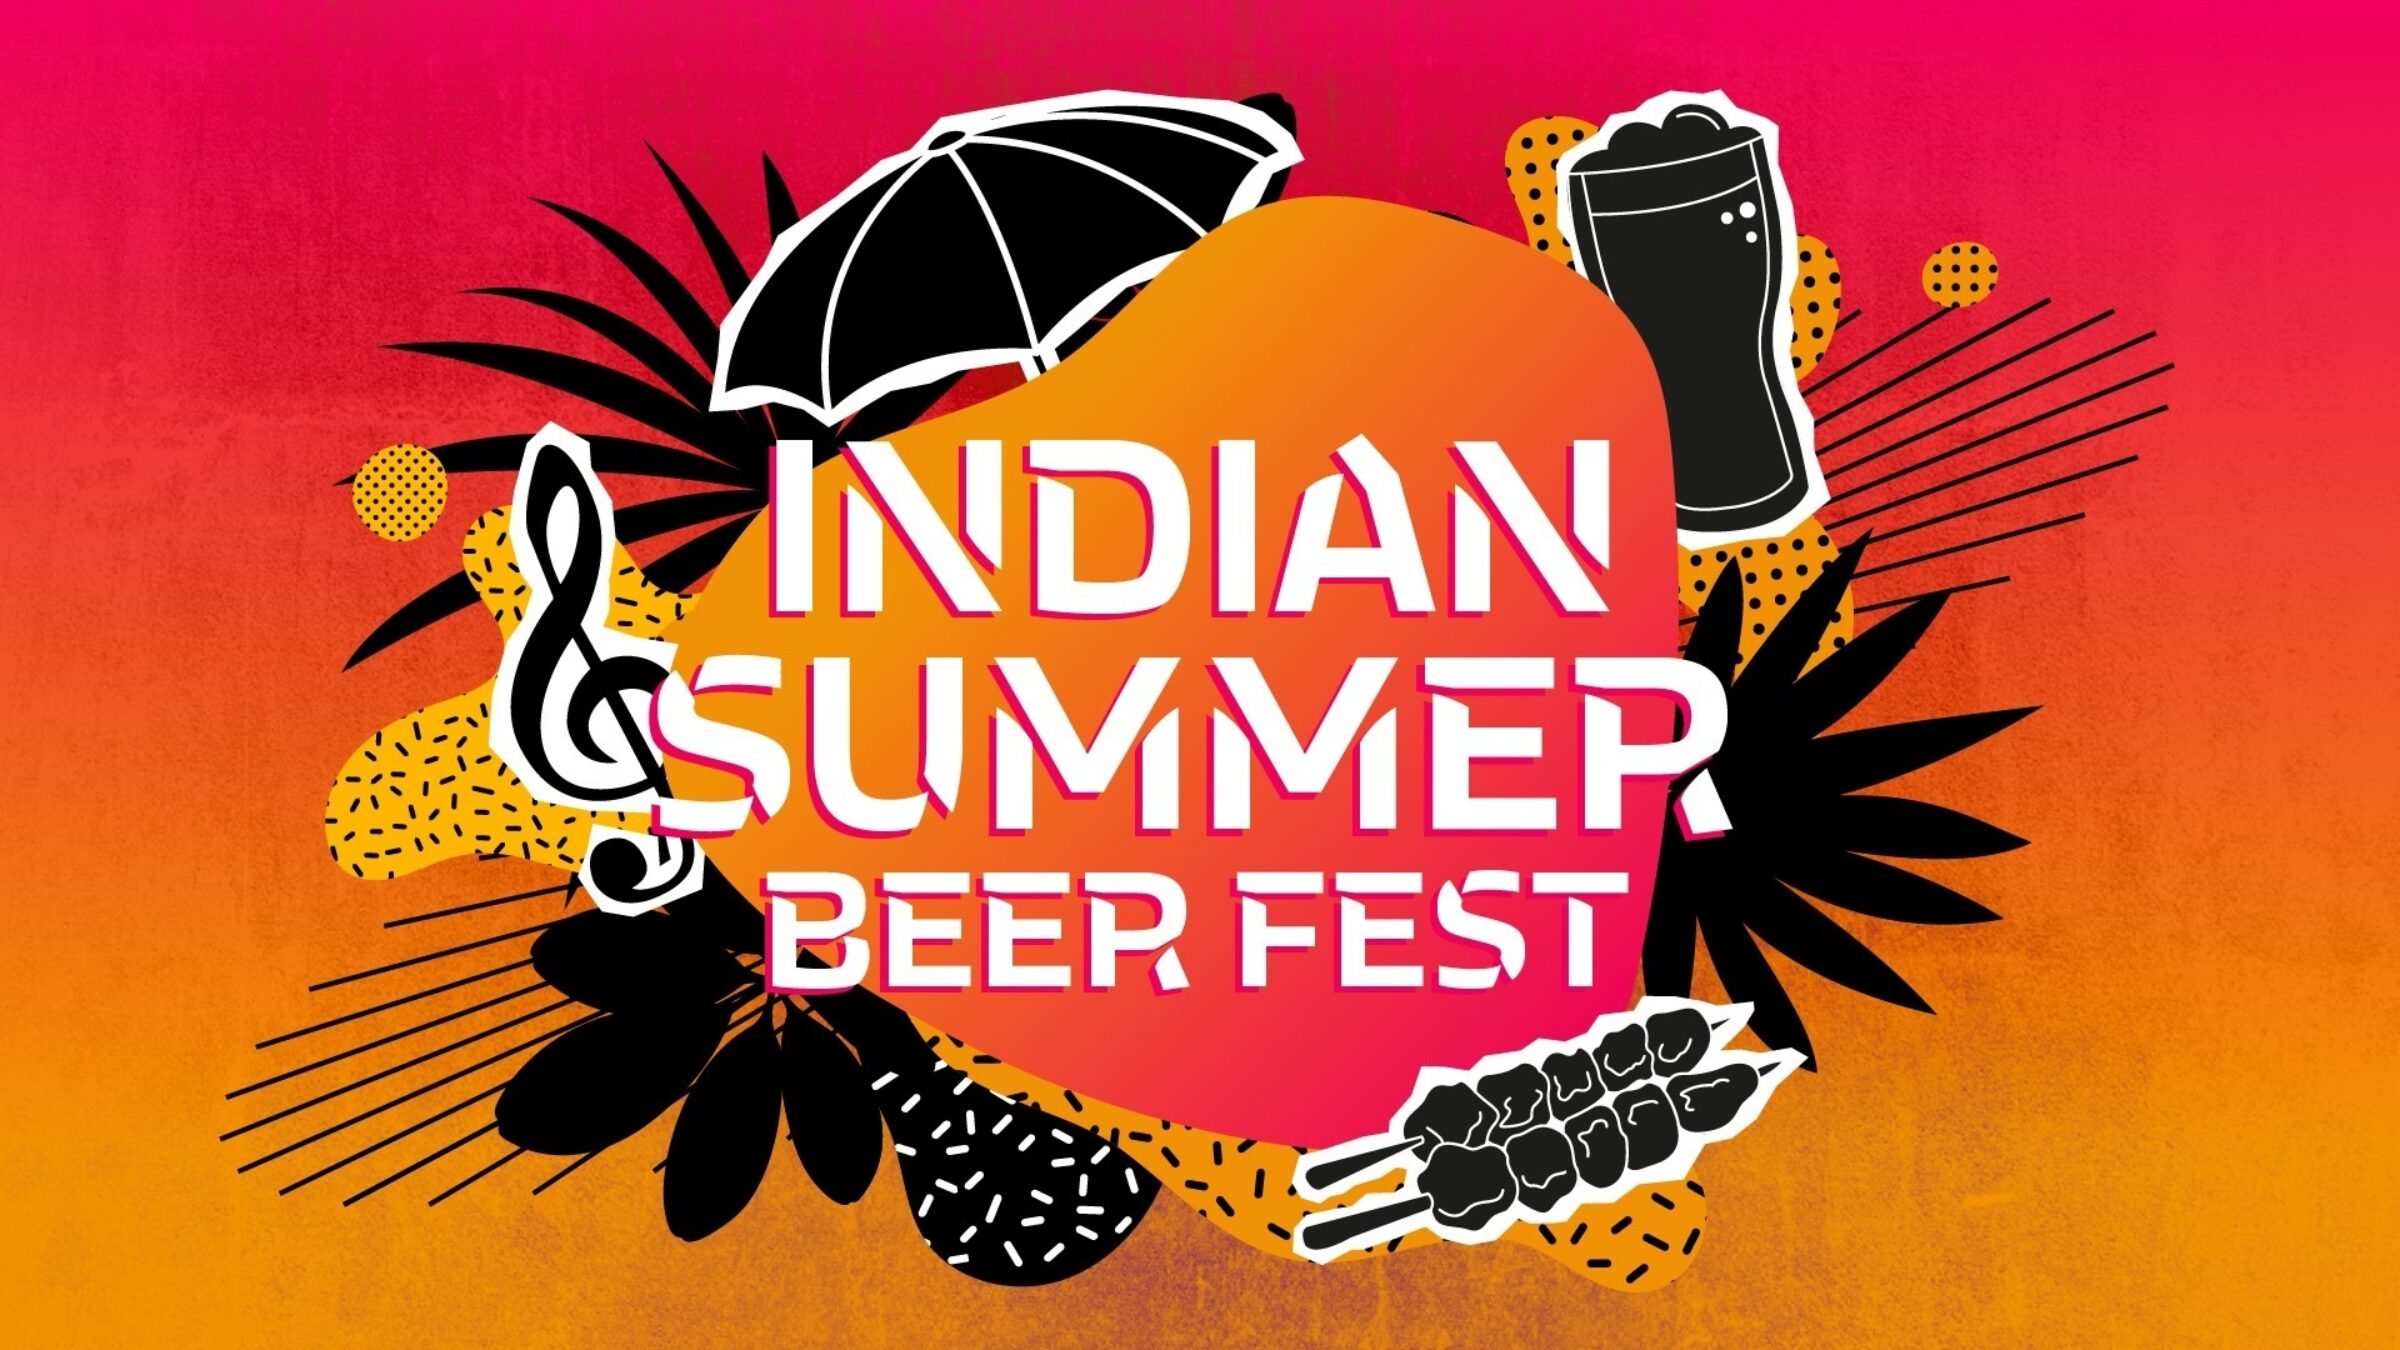 Indian Summer Beer Fest